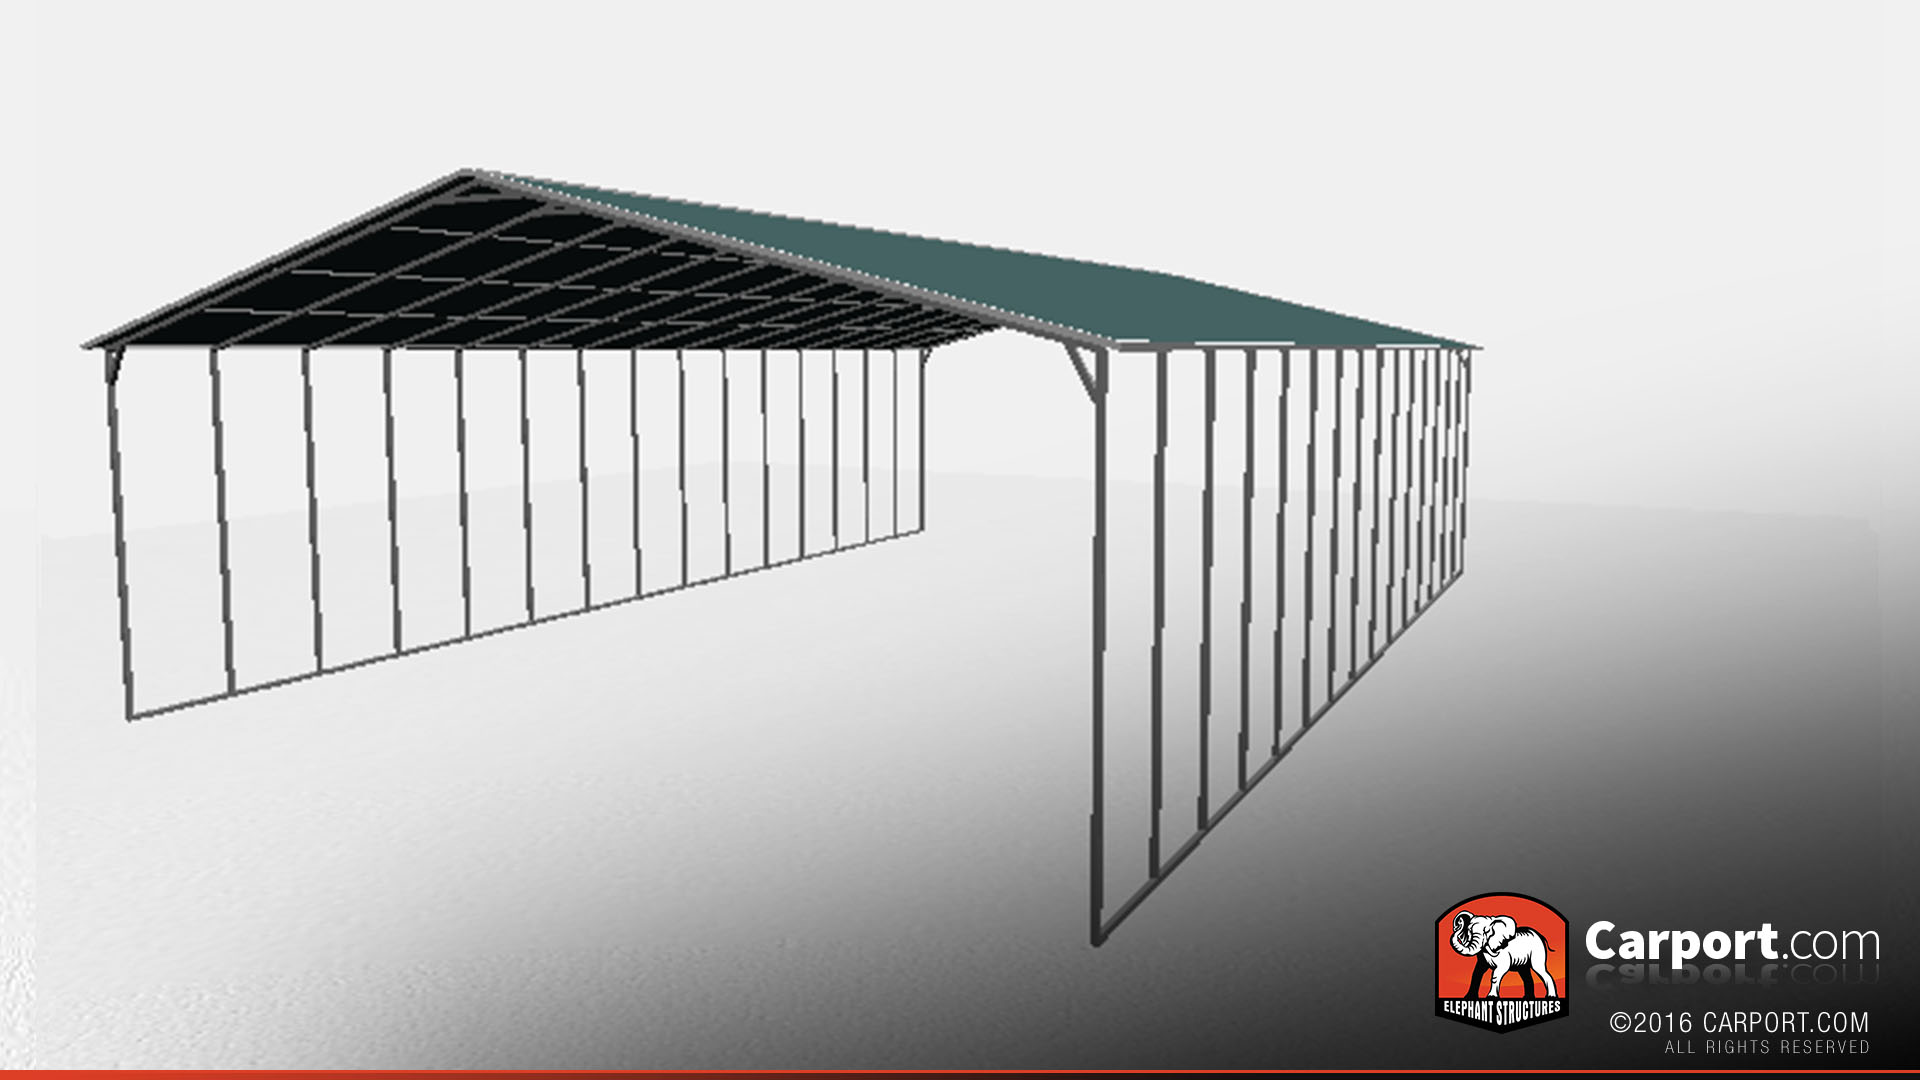 Metal Carport With Vertical Roof Panels 40 X 60 Roof